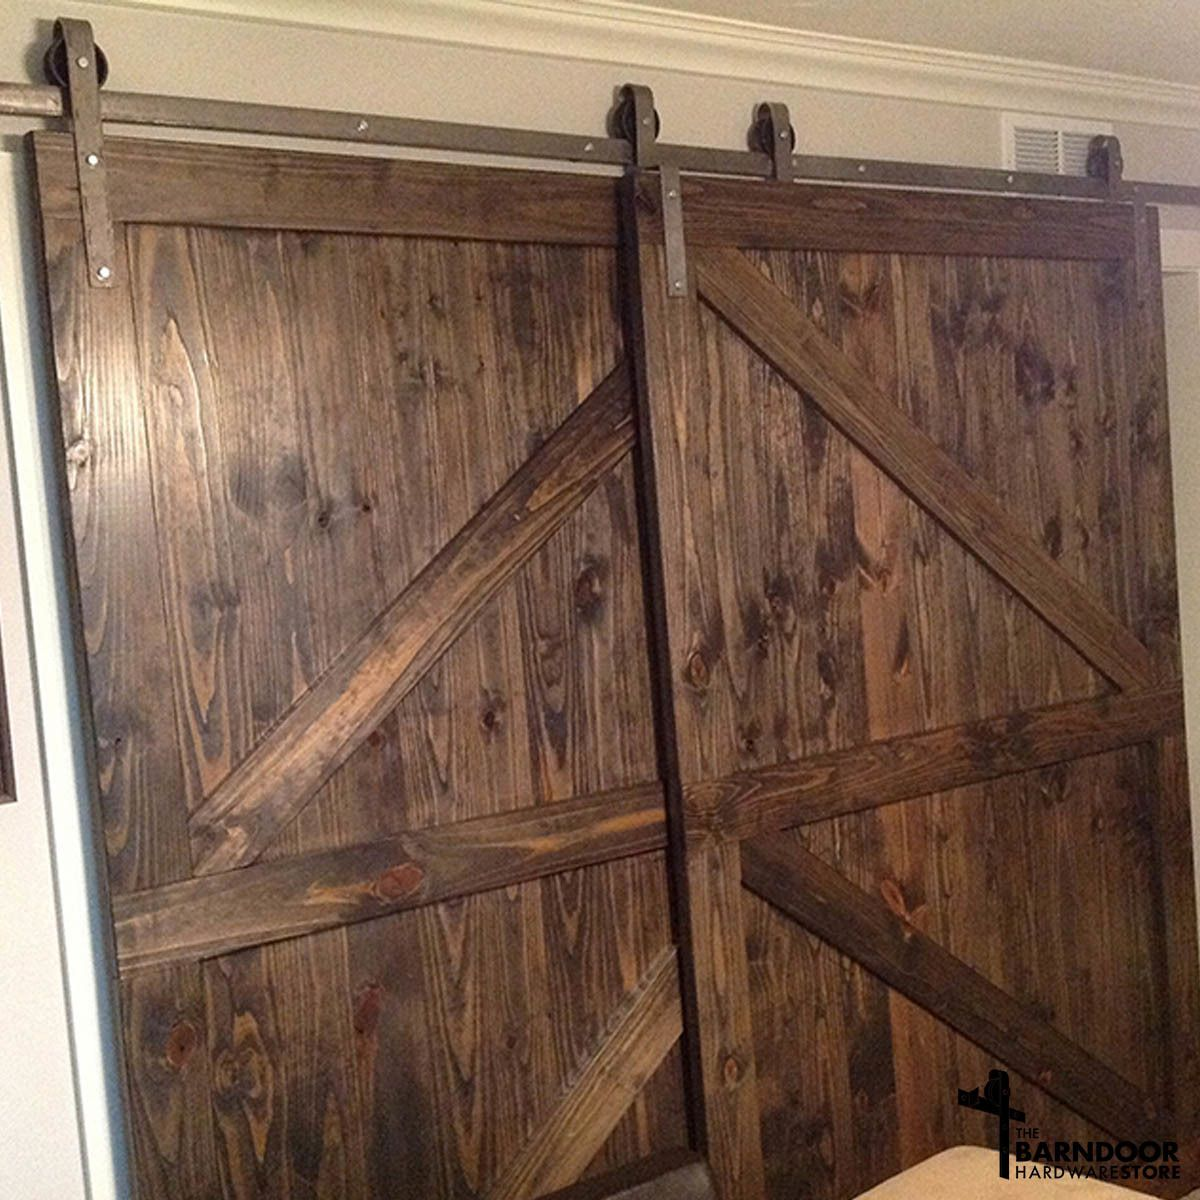 This Single Track Bypass Barn Door Hardware Kit Allows Two Doors To Over Lap Each Other So They Are Ba Bypass Barn Door Hardware Bypass Barn Door Diy Barn Door